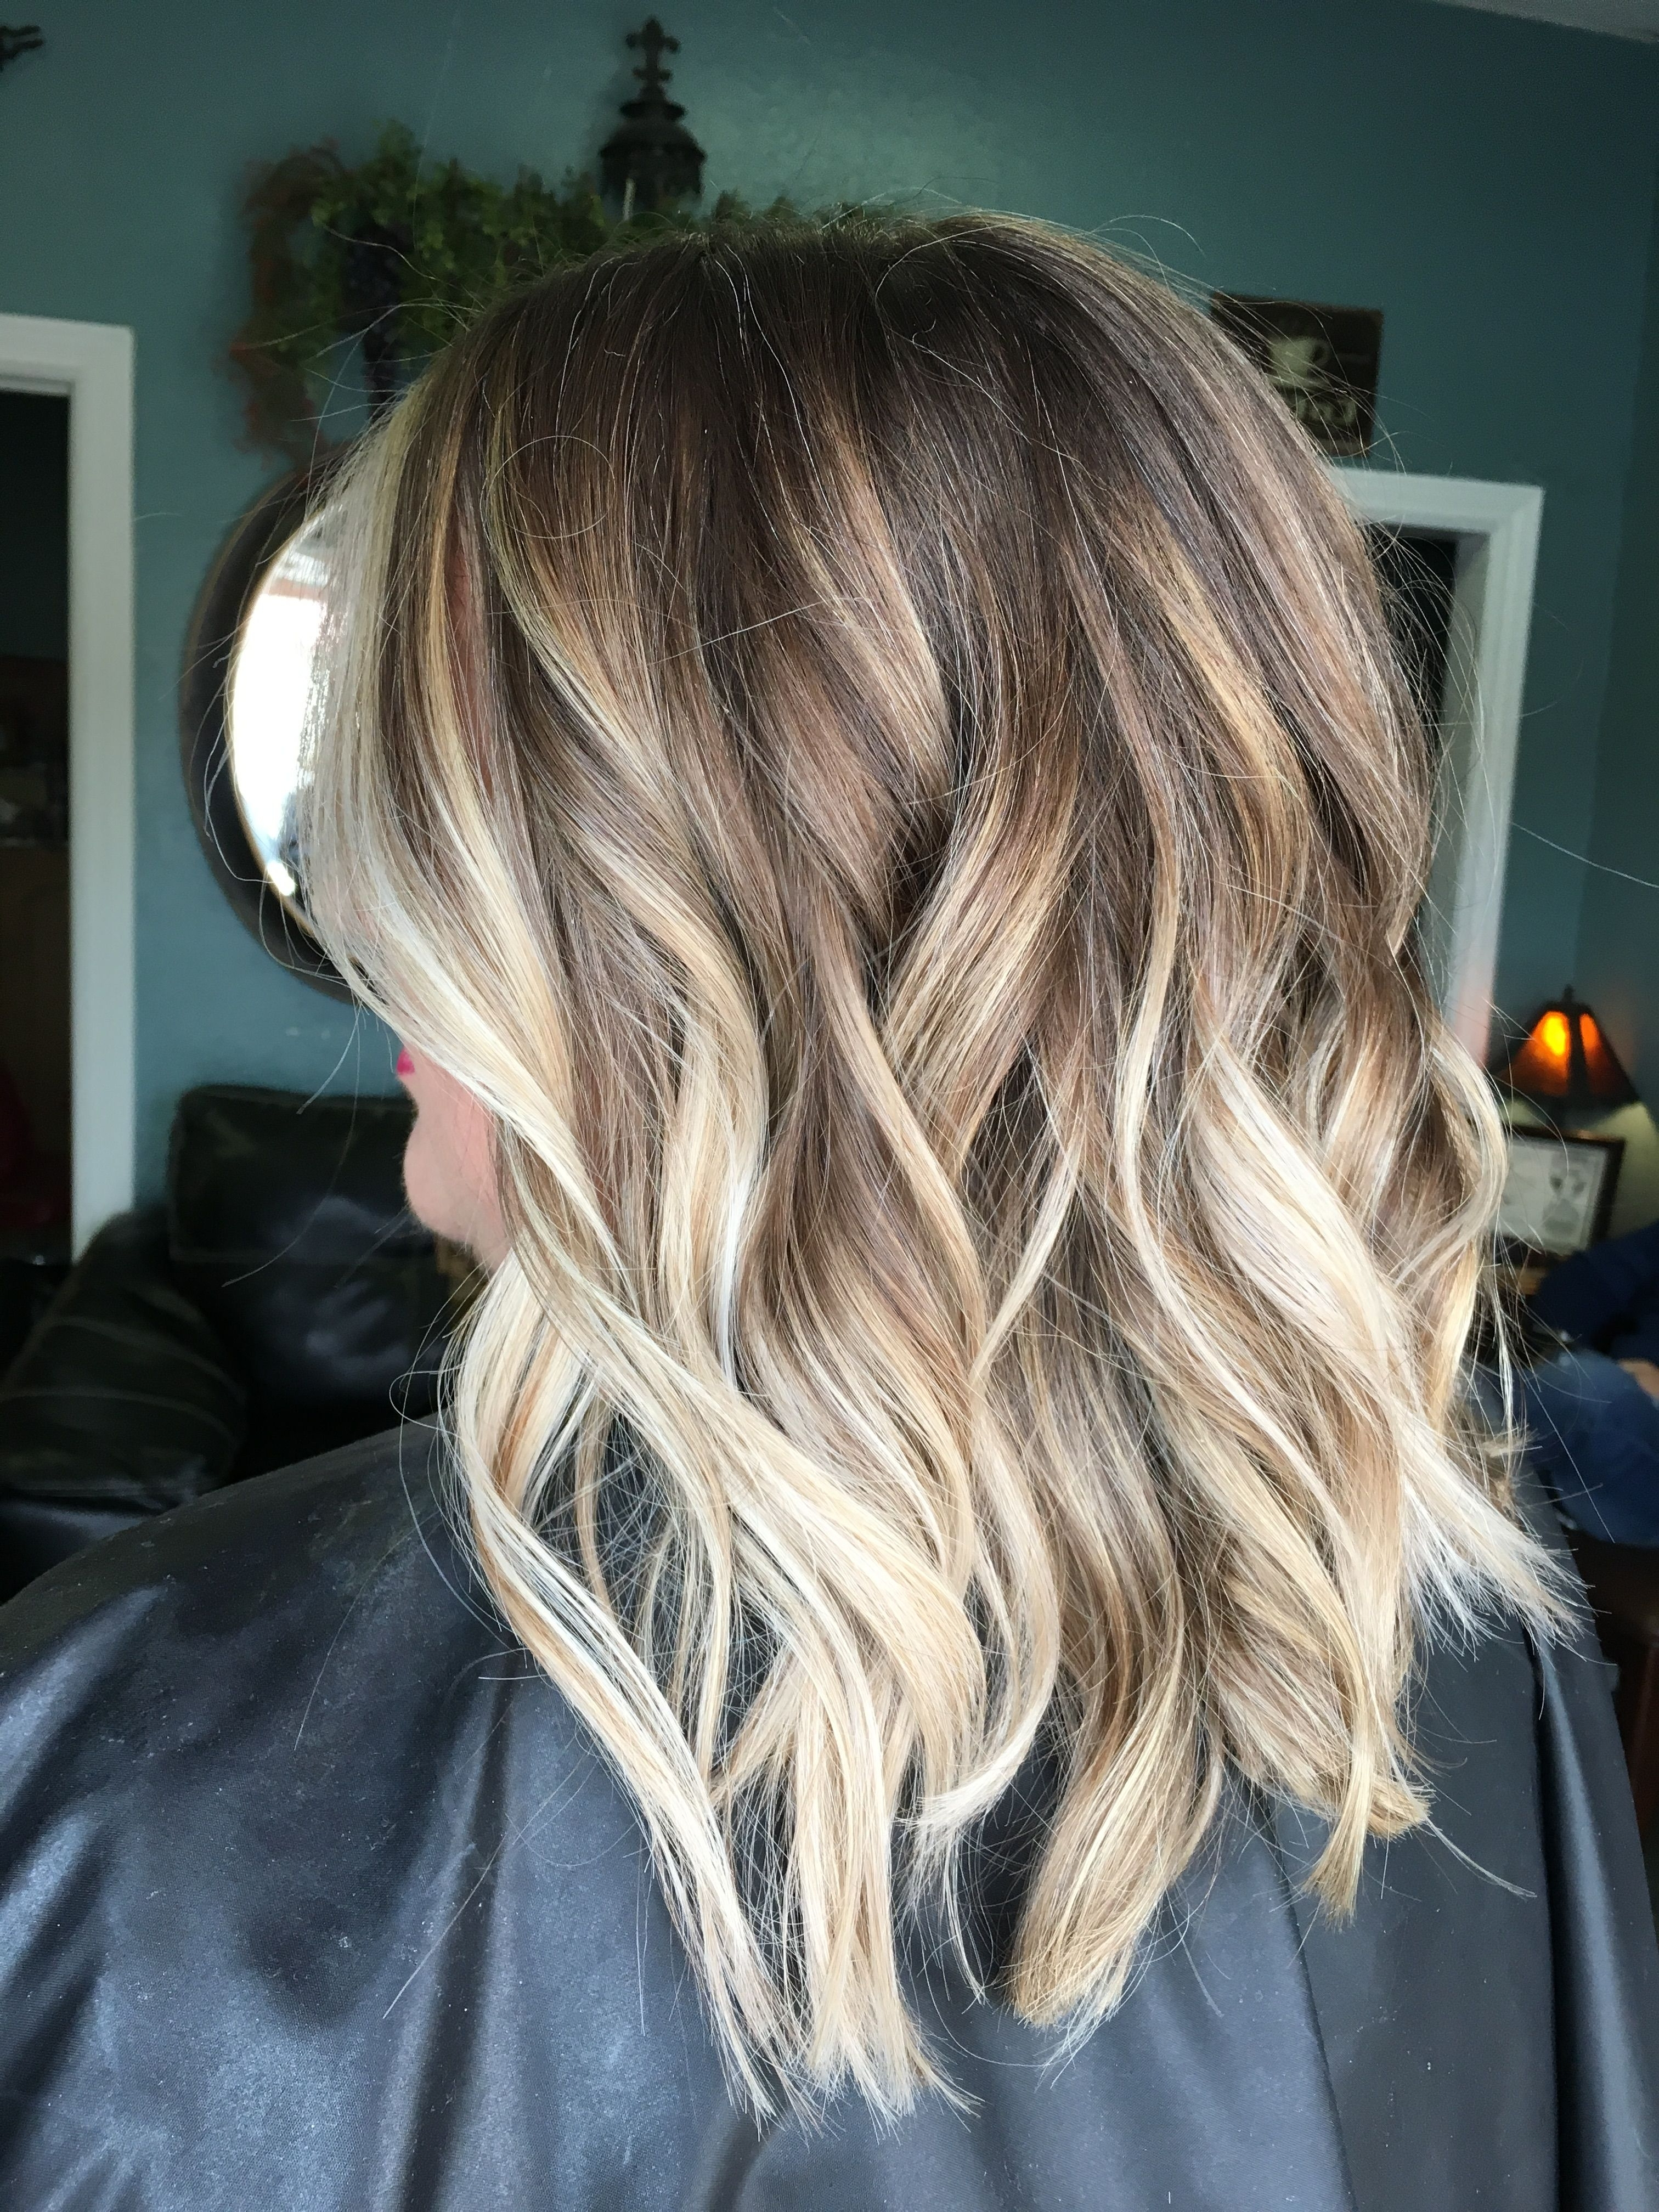 Balayage, Blonde Hair, Brown Hair, Blonde Highlights, Lob, Bob For Best And Newest Volumized Caramel Blonde Lob Hairstyles (View 6 of 20)